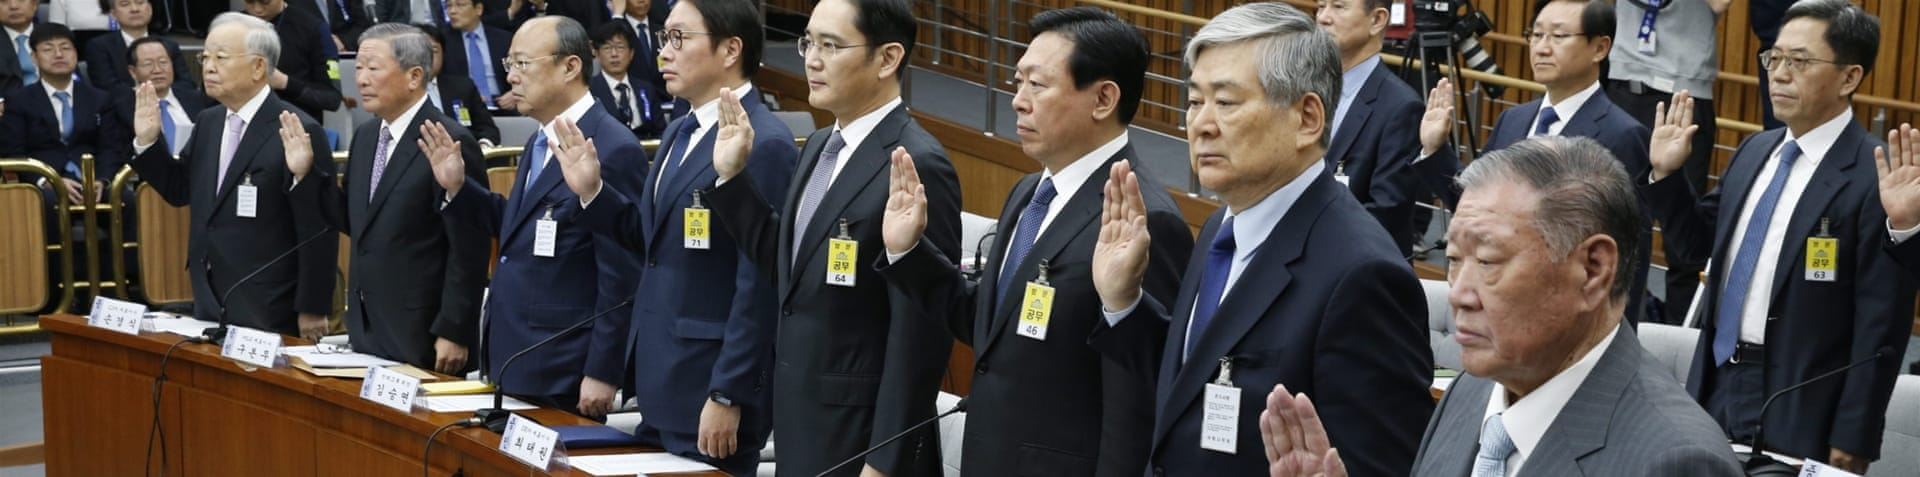 Parliament this month voted to impeach Park over an influence-peddling scandal [EPA]